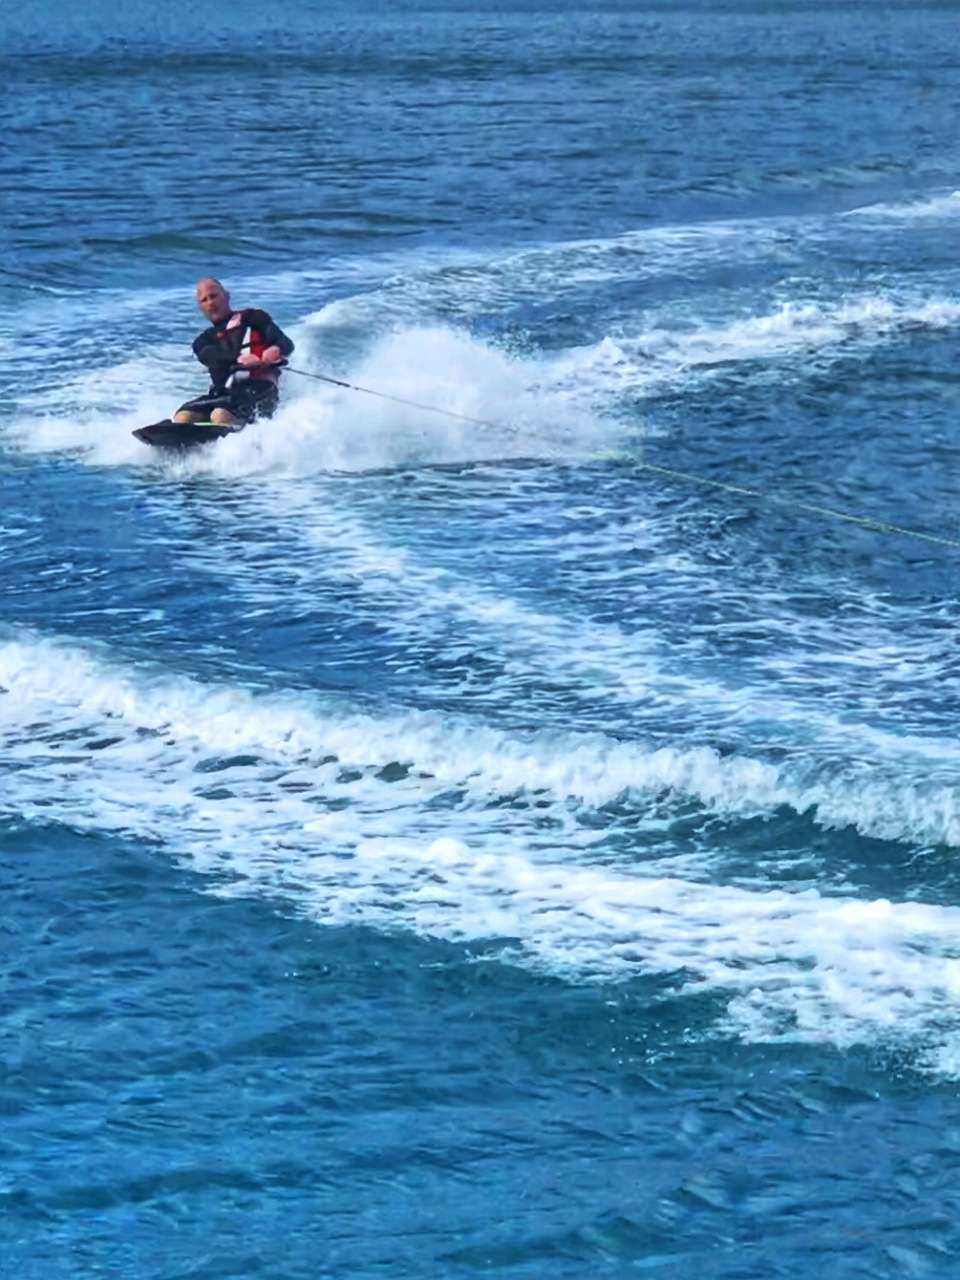 Kneeboarding! Even big kids get to have watersports fun!  We also have a big tube, wakeboard, and skis for the adventurous.